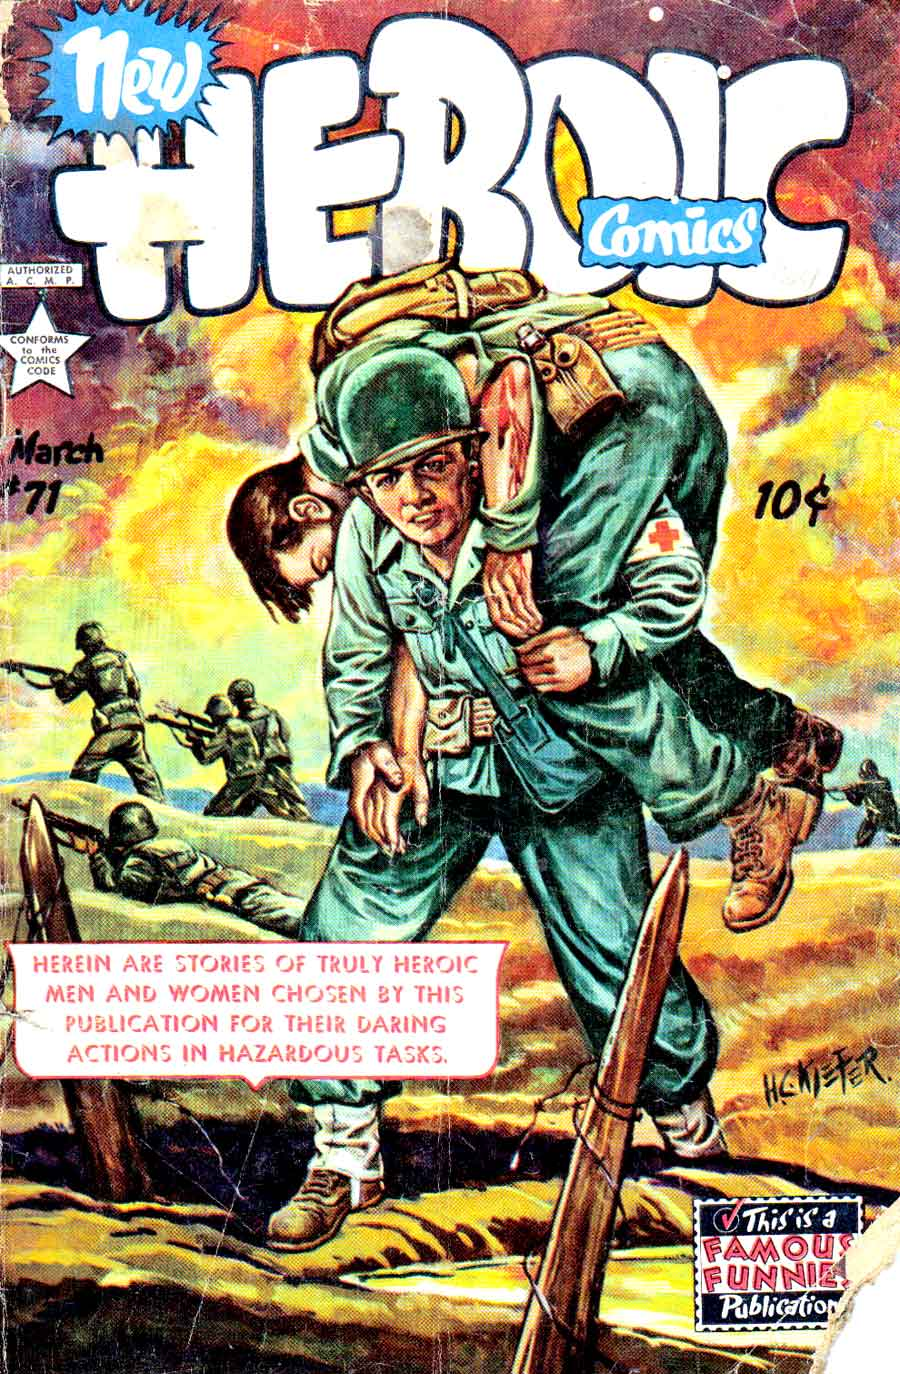 Heroic Comics #71 golden age 1950s war comic book cover